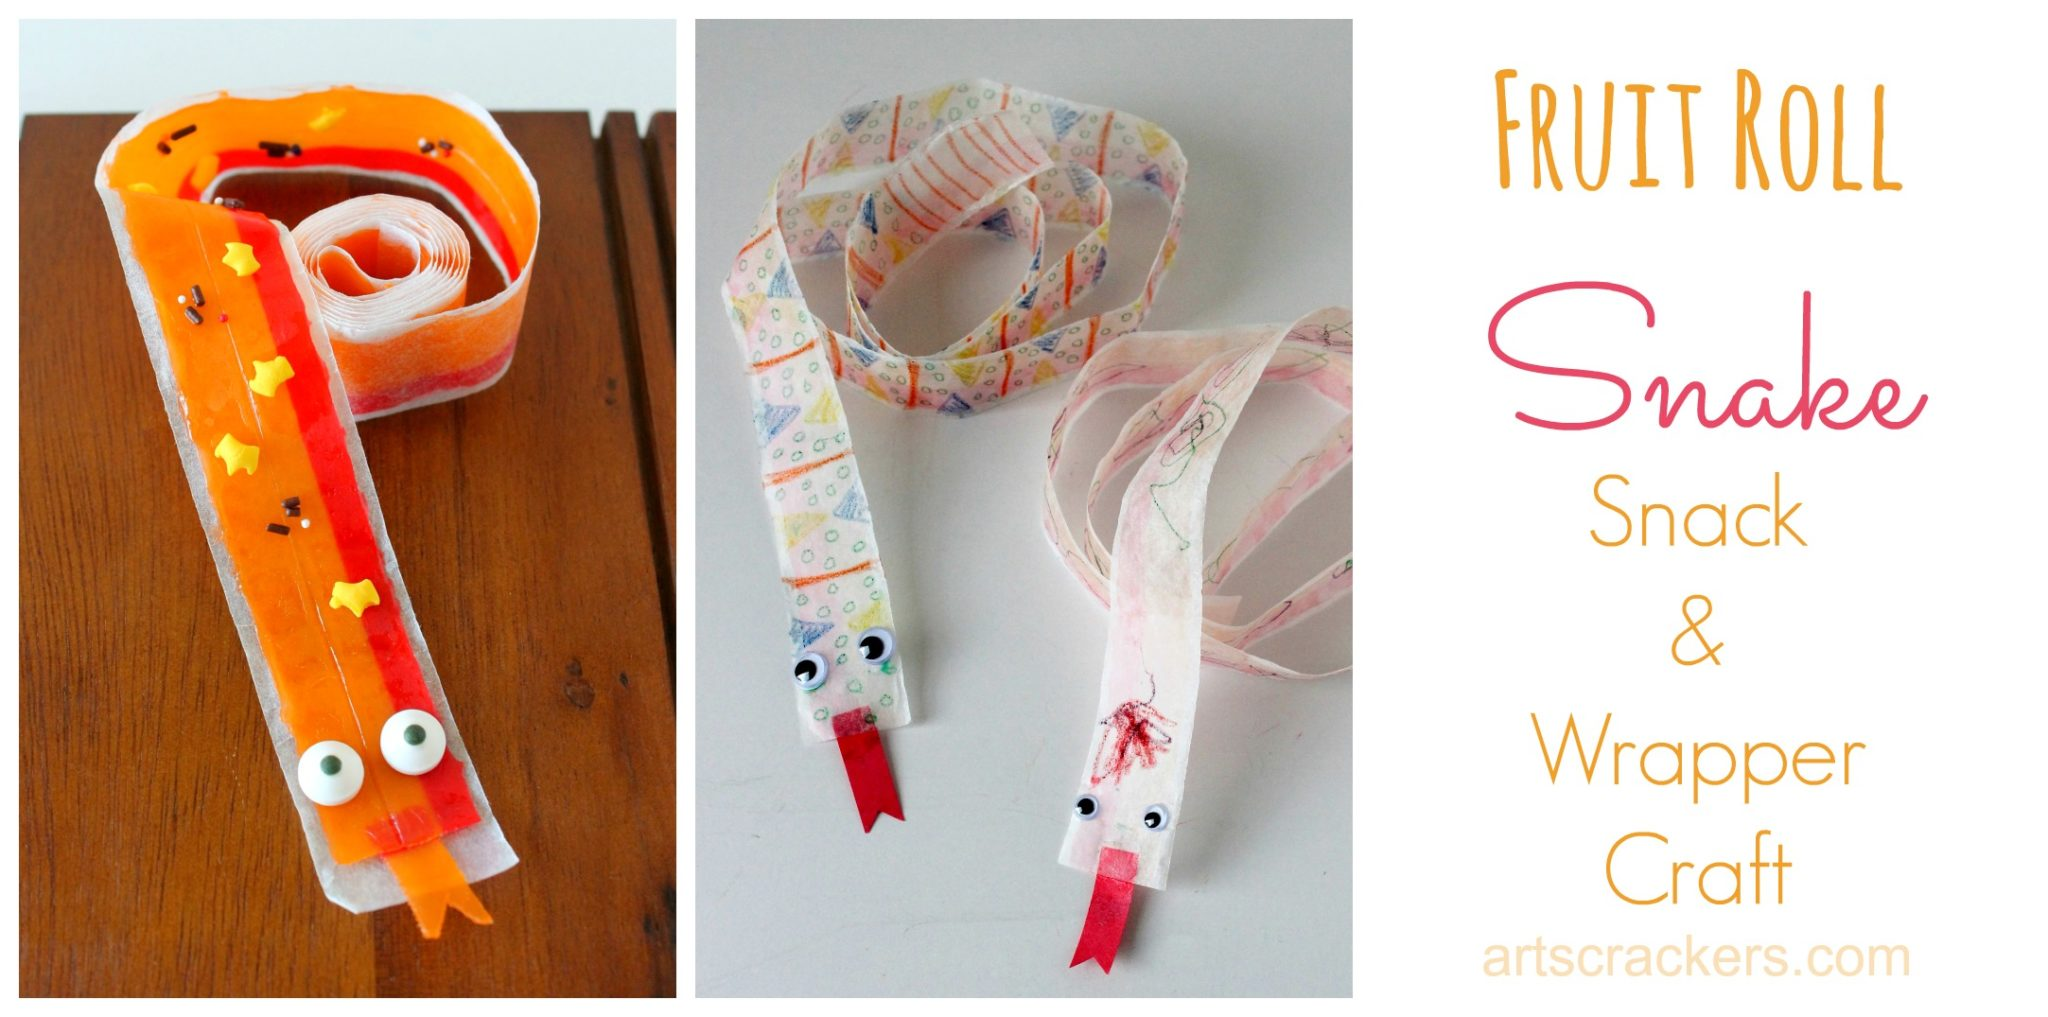 Fruit Roll Snake Snack and Wrapper Kid Crafts